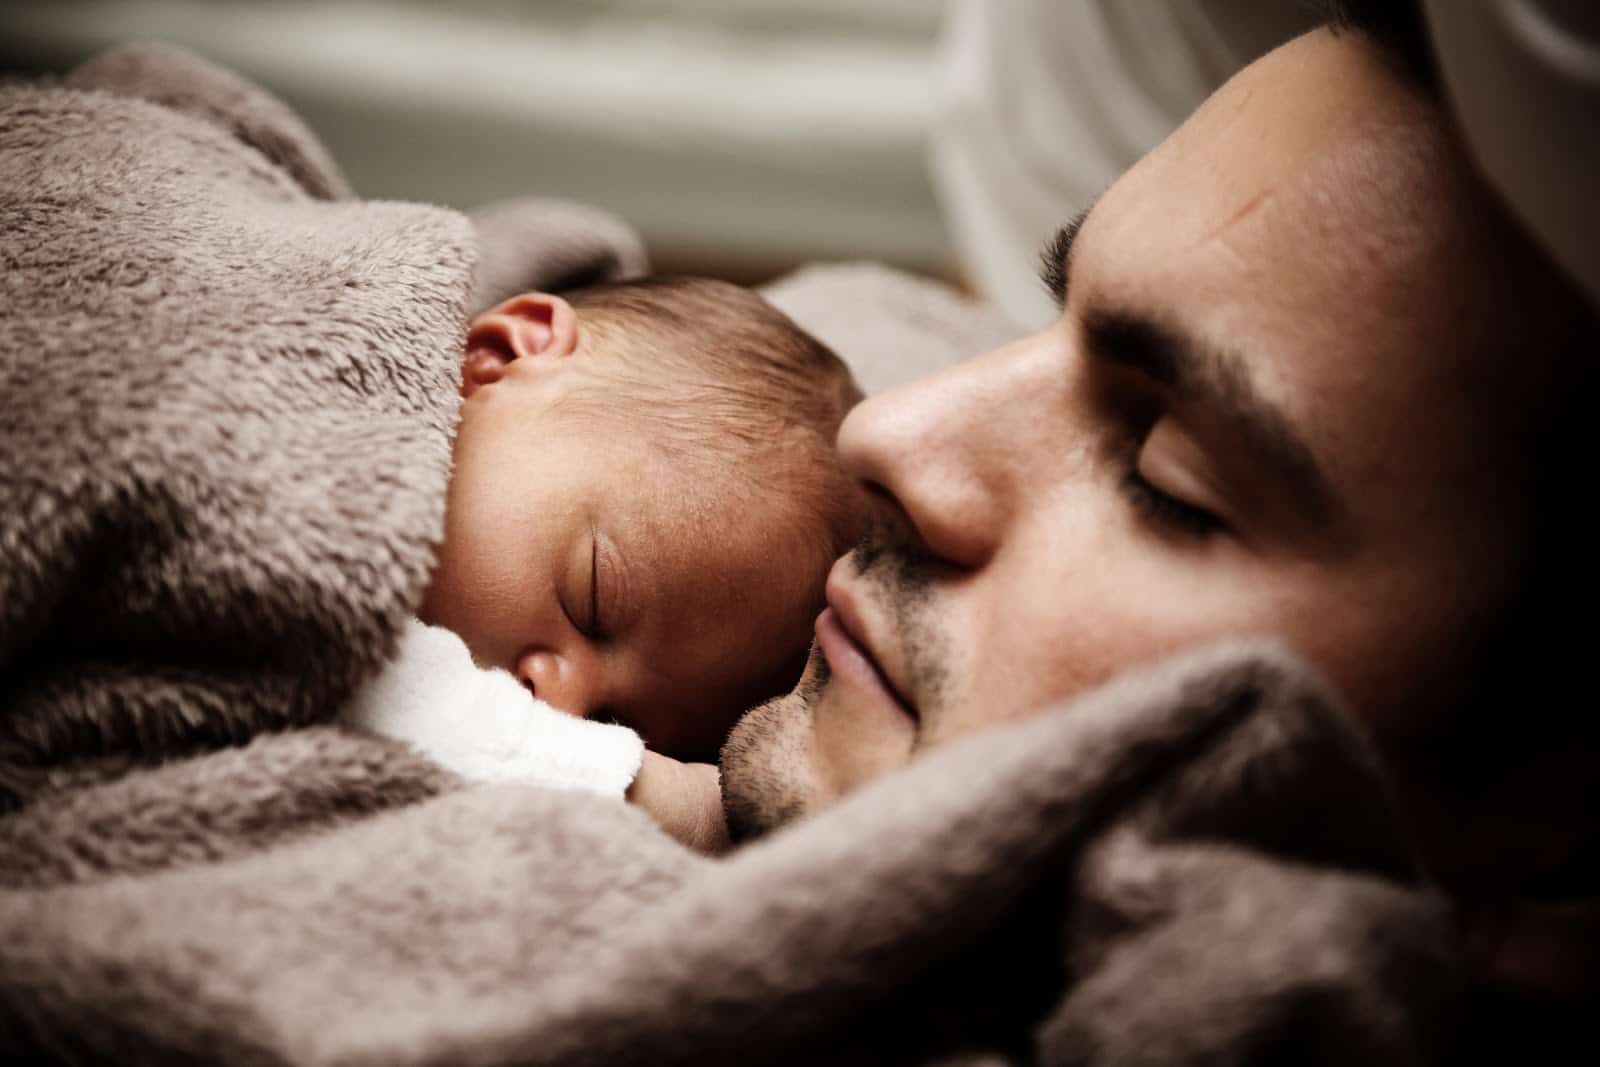 Man and child sleeping